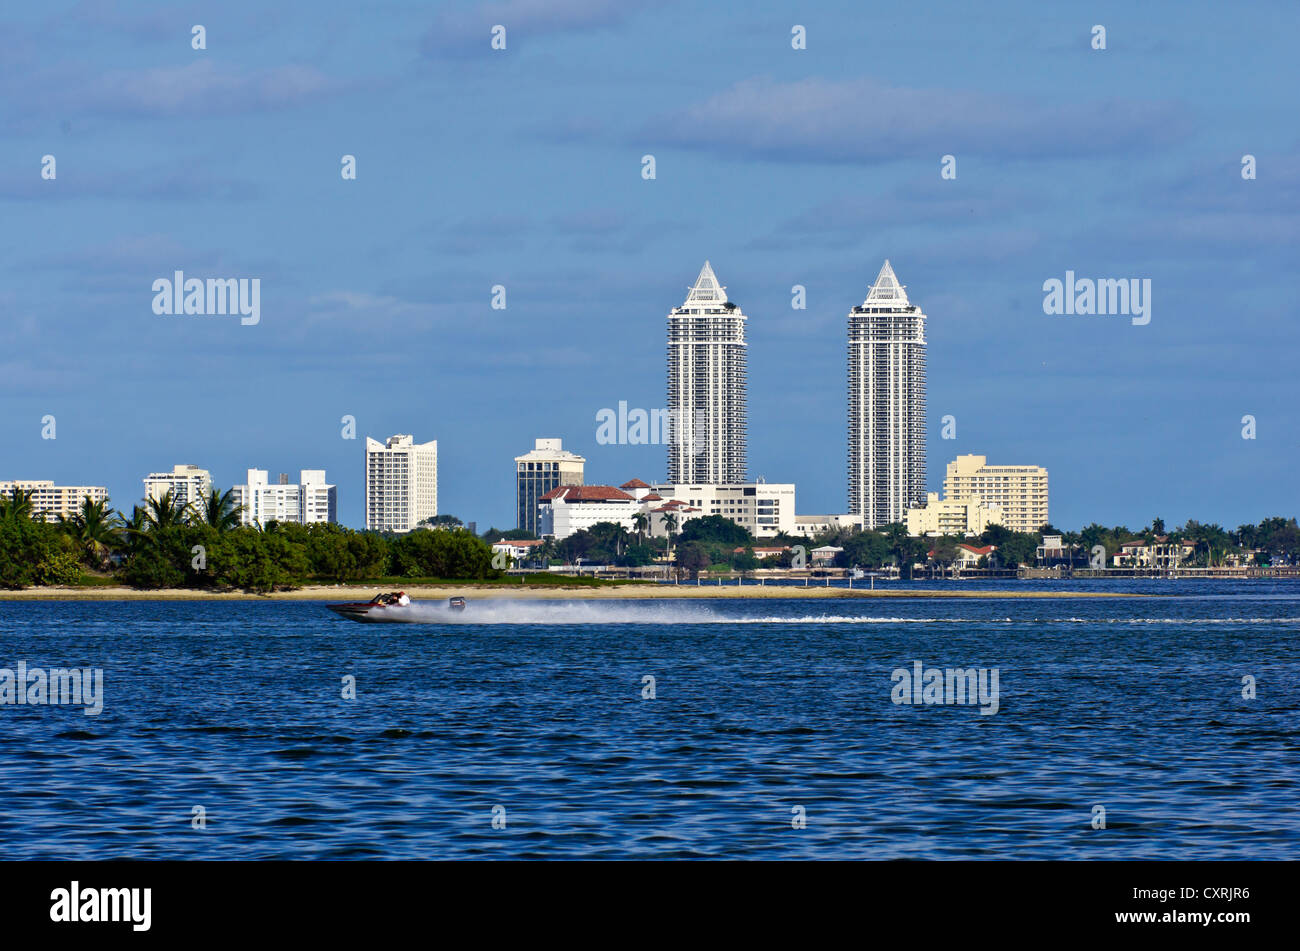 Skyline at the Mount Sinai Medical Center from Morningside Park with motorboat, Miami, Florida, USA - Stock Image